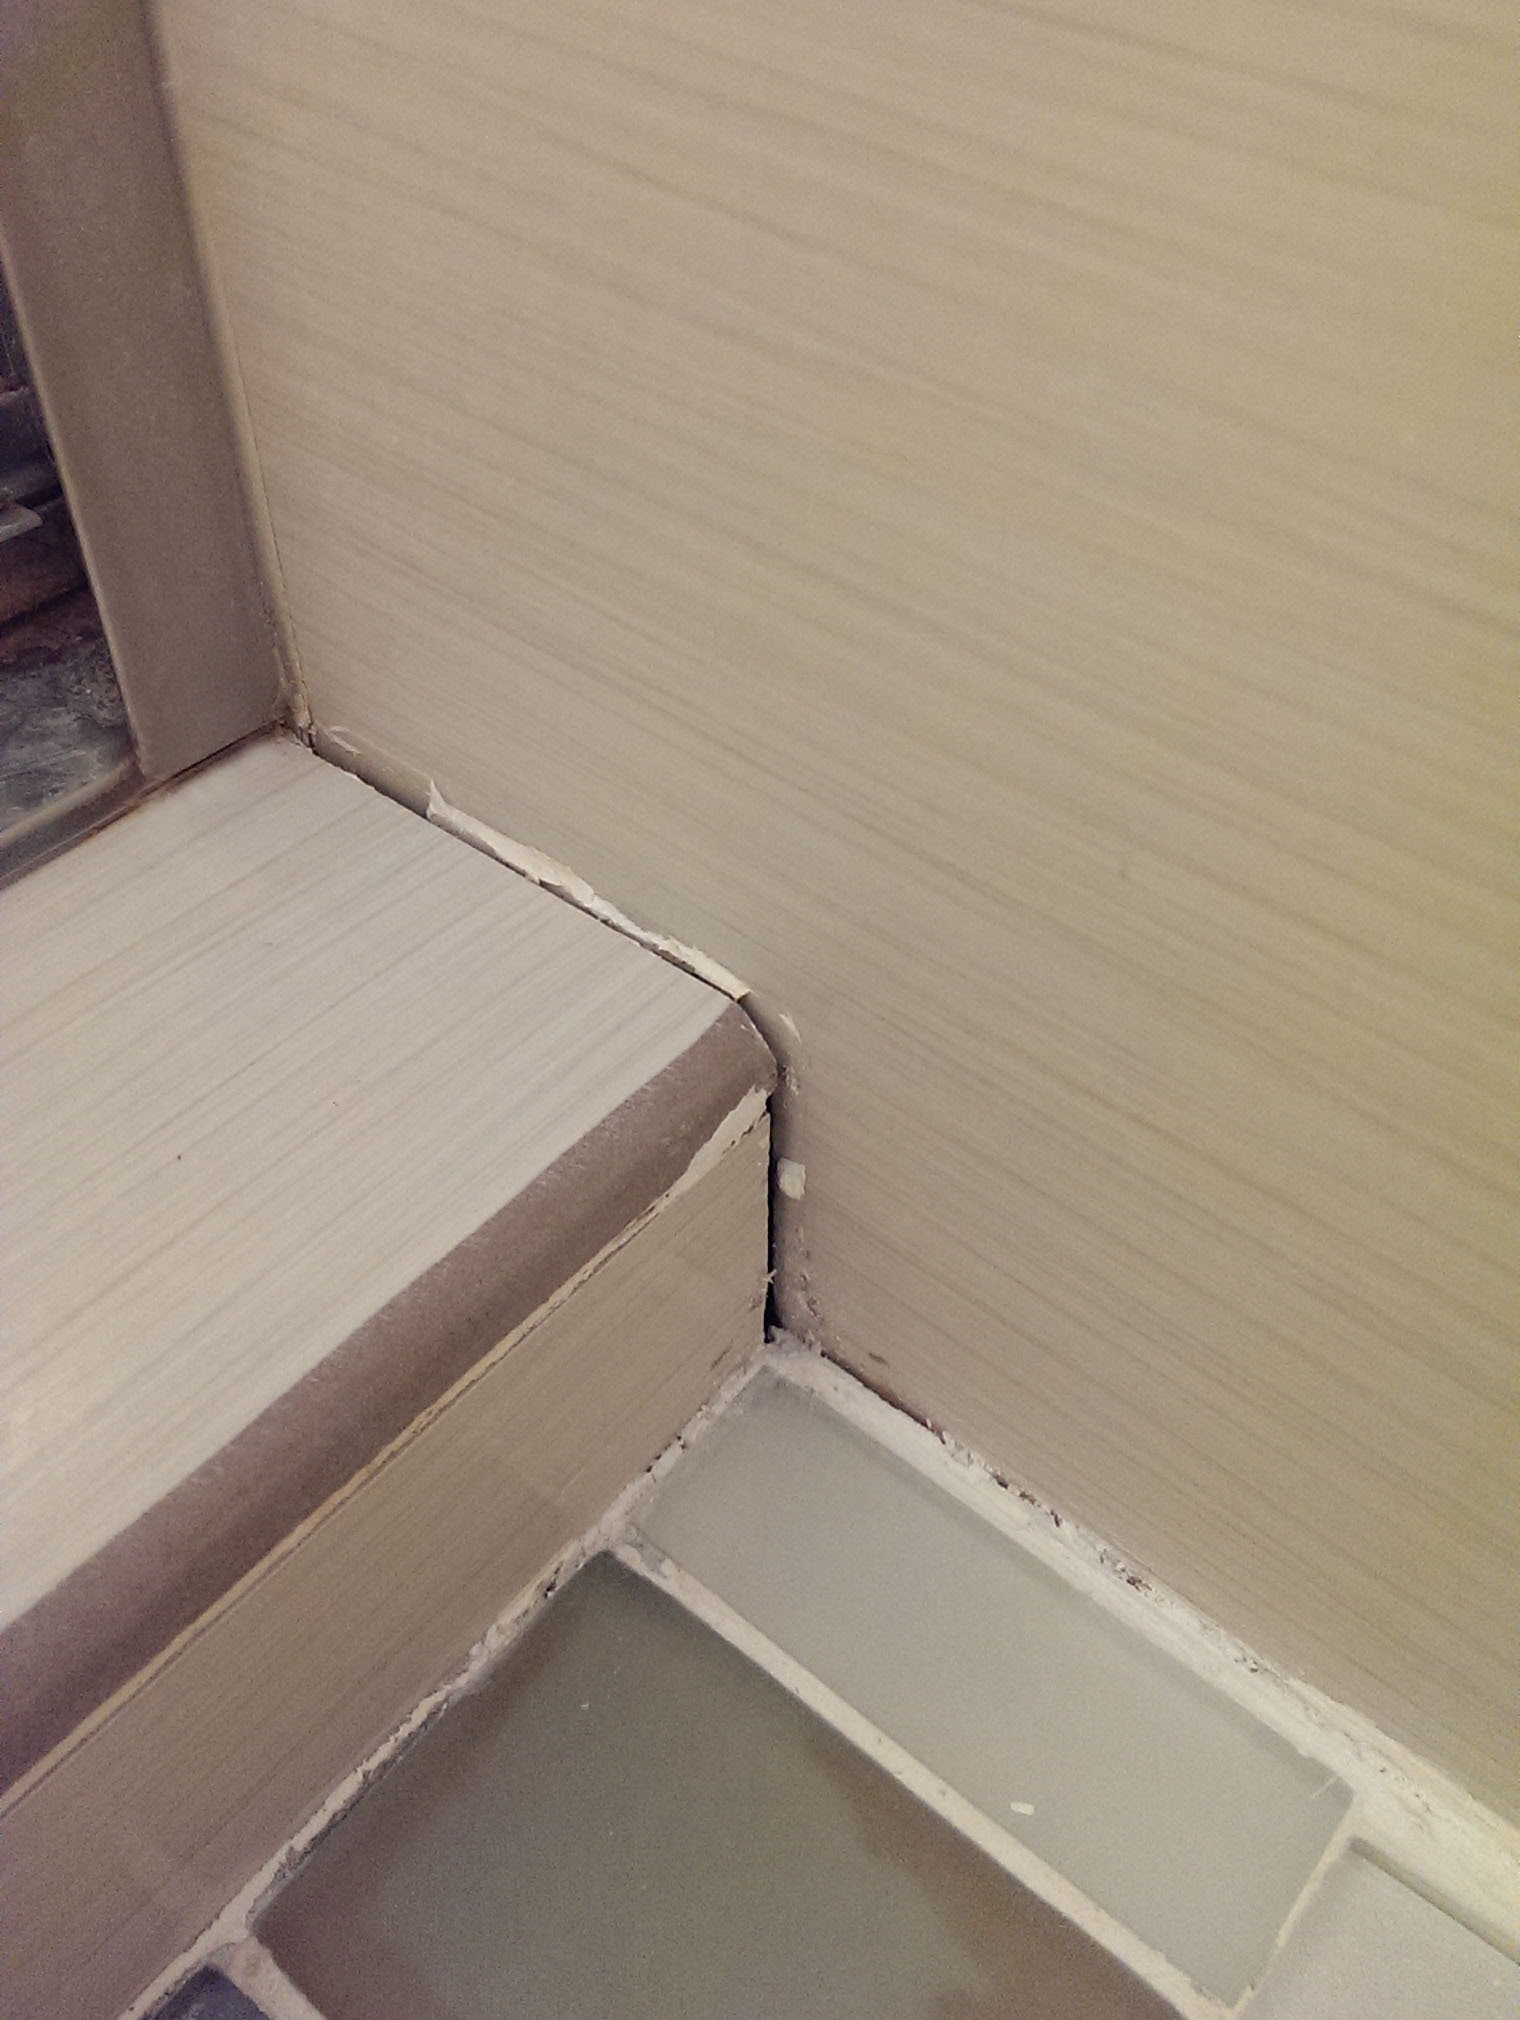 How to fill and seal gap between tile of shower? (floor ...